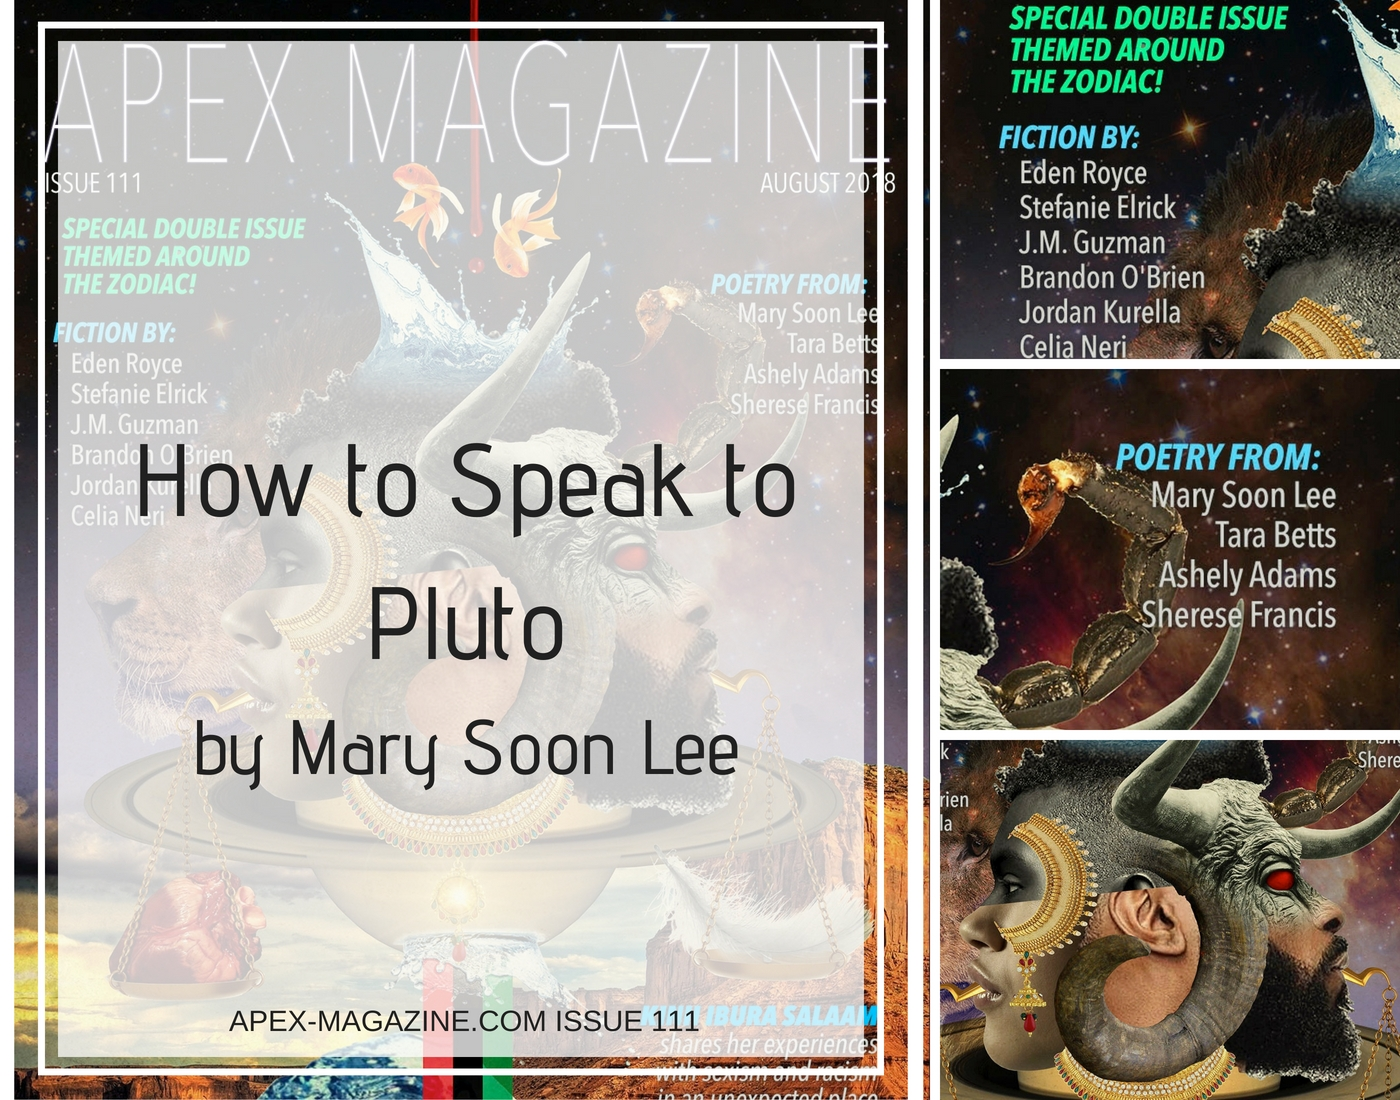 How to Speak to Pluto